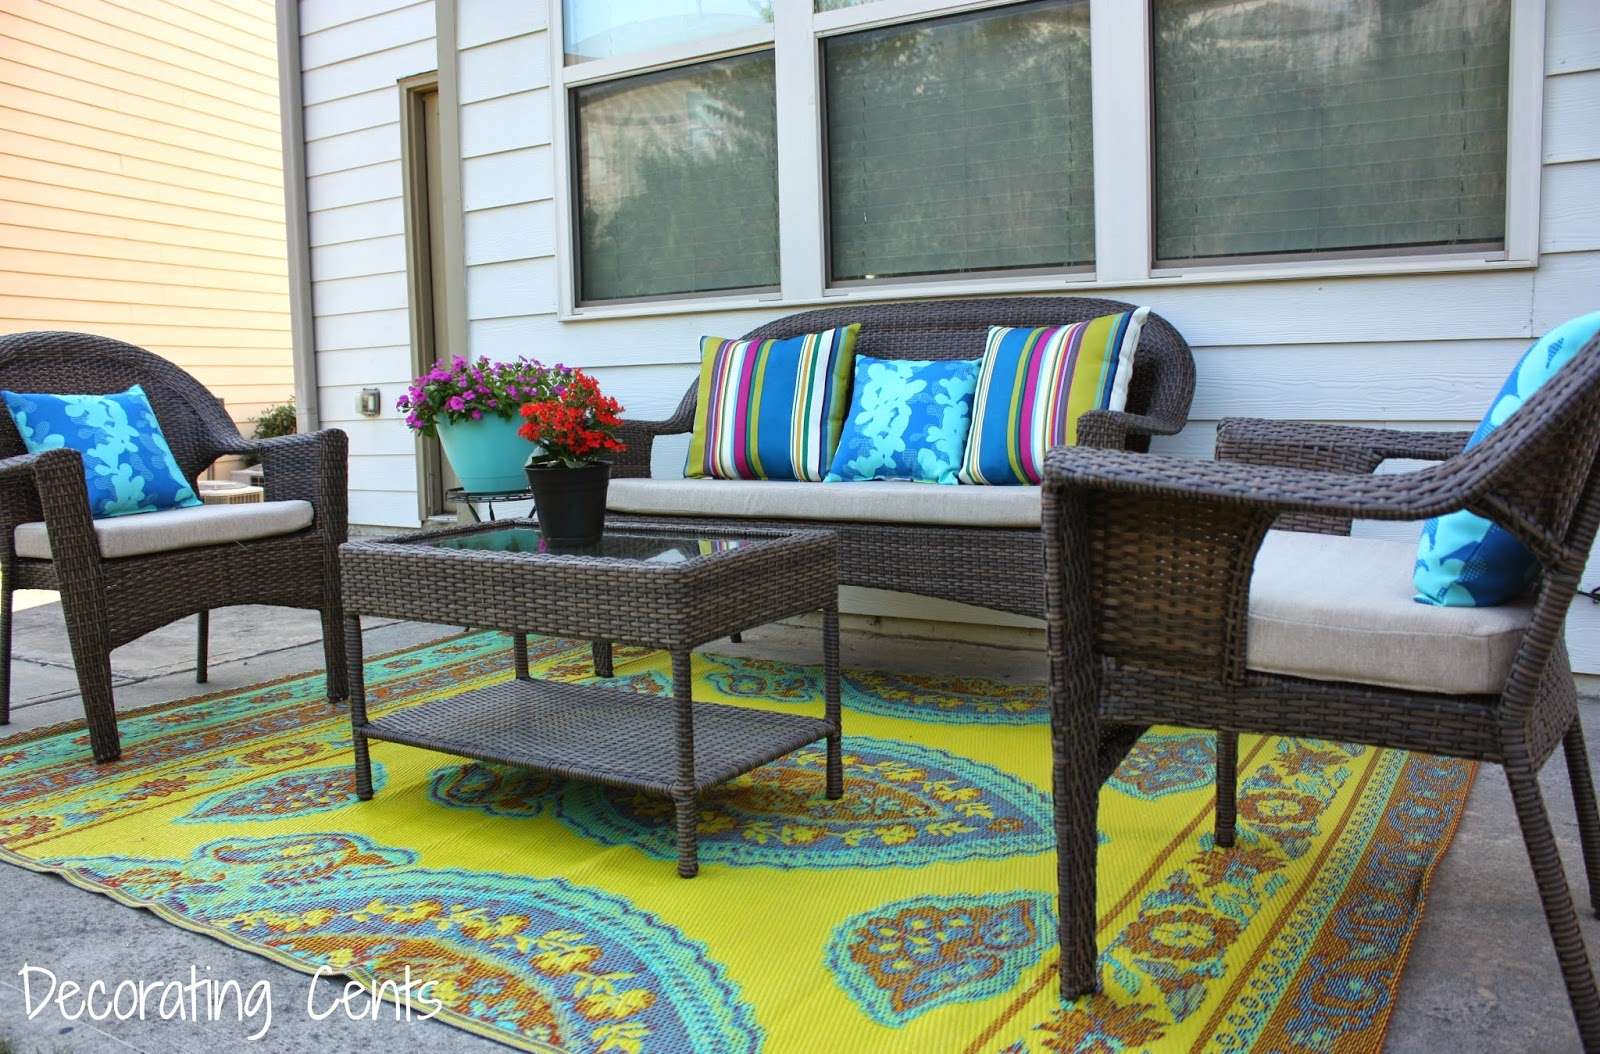 Decorating Cents: Our New Patio